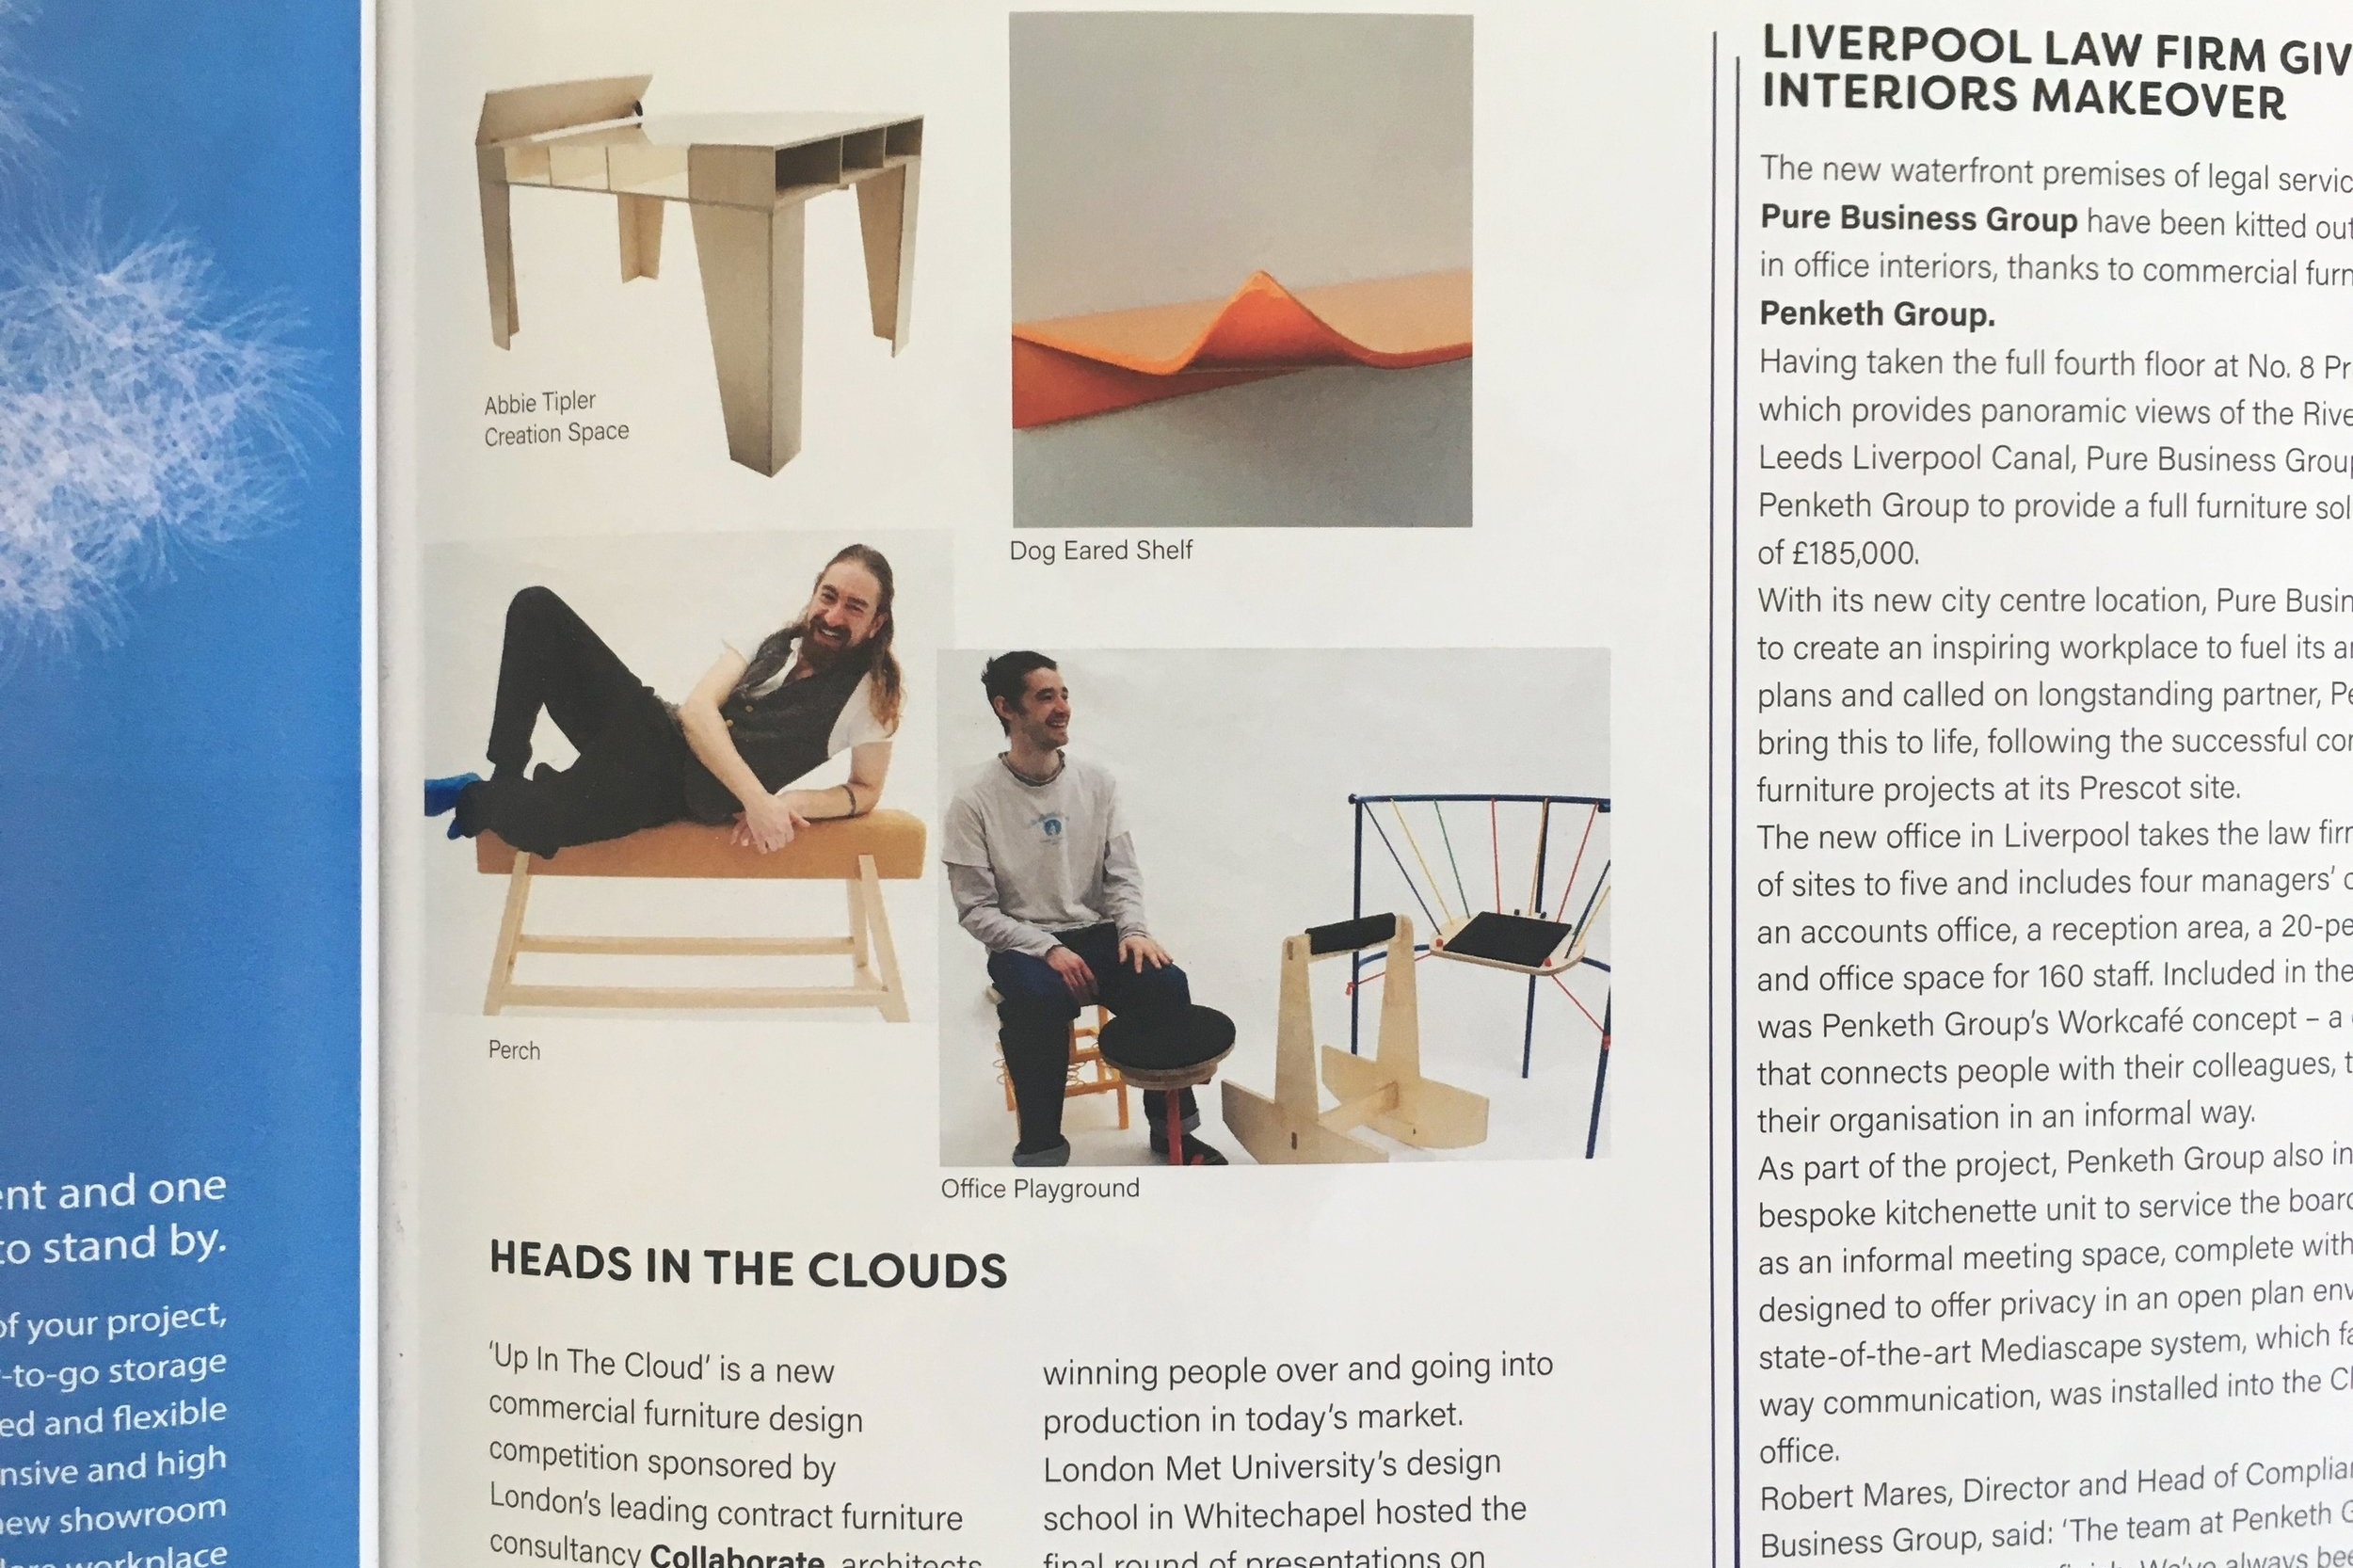 mIX INTERIORS 183 - Up in the Clouds, a furniture makers competition sponsored by Collaborate